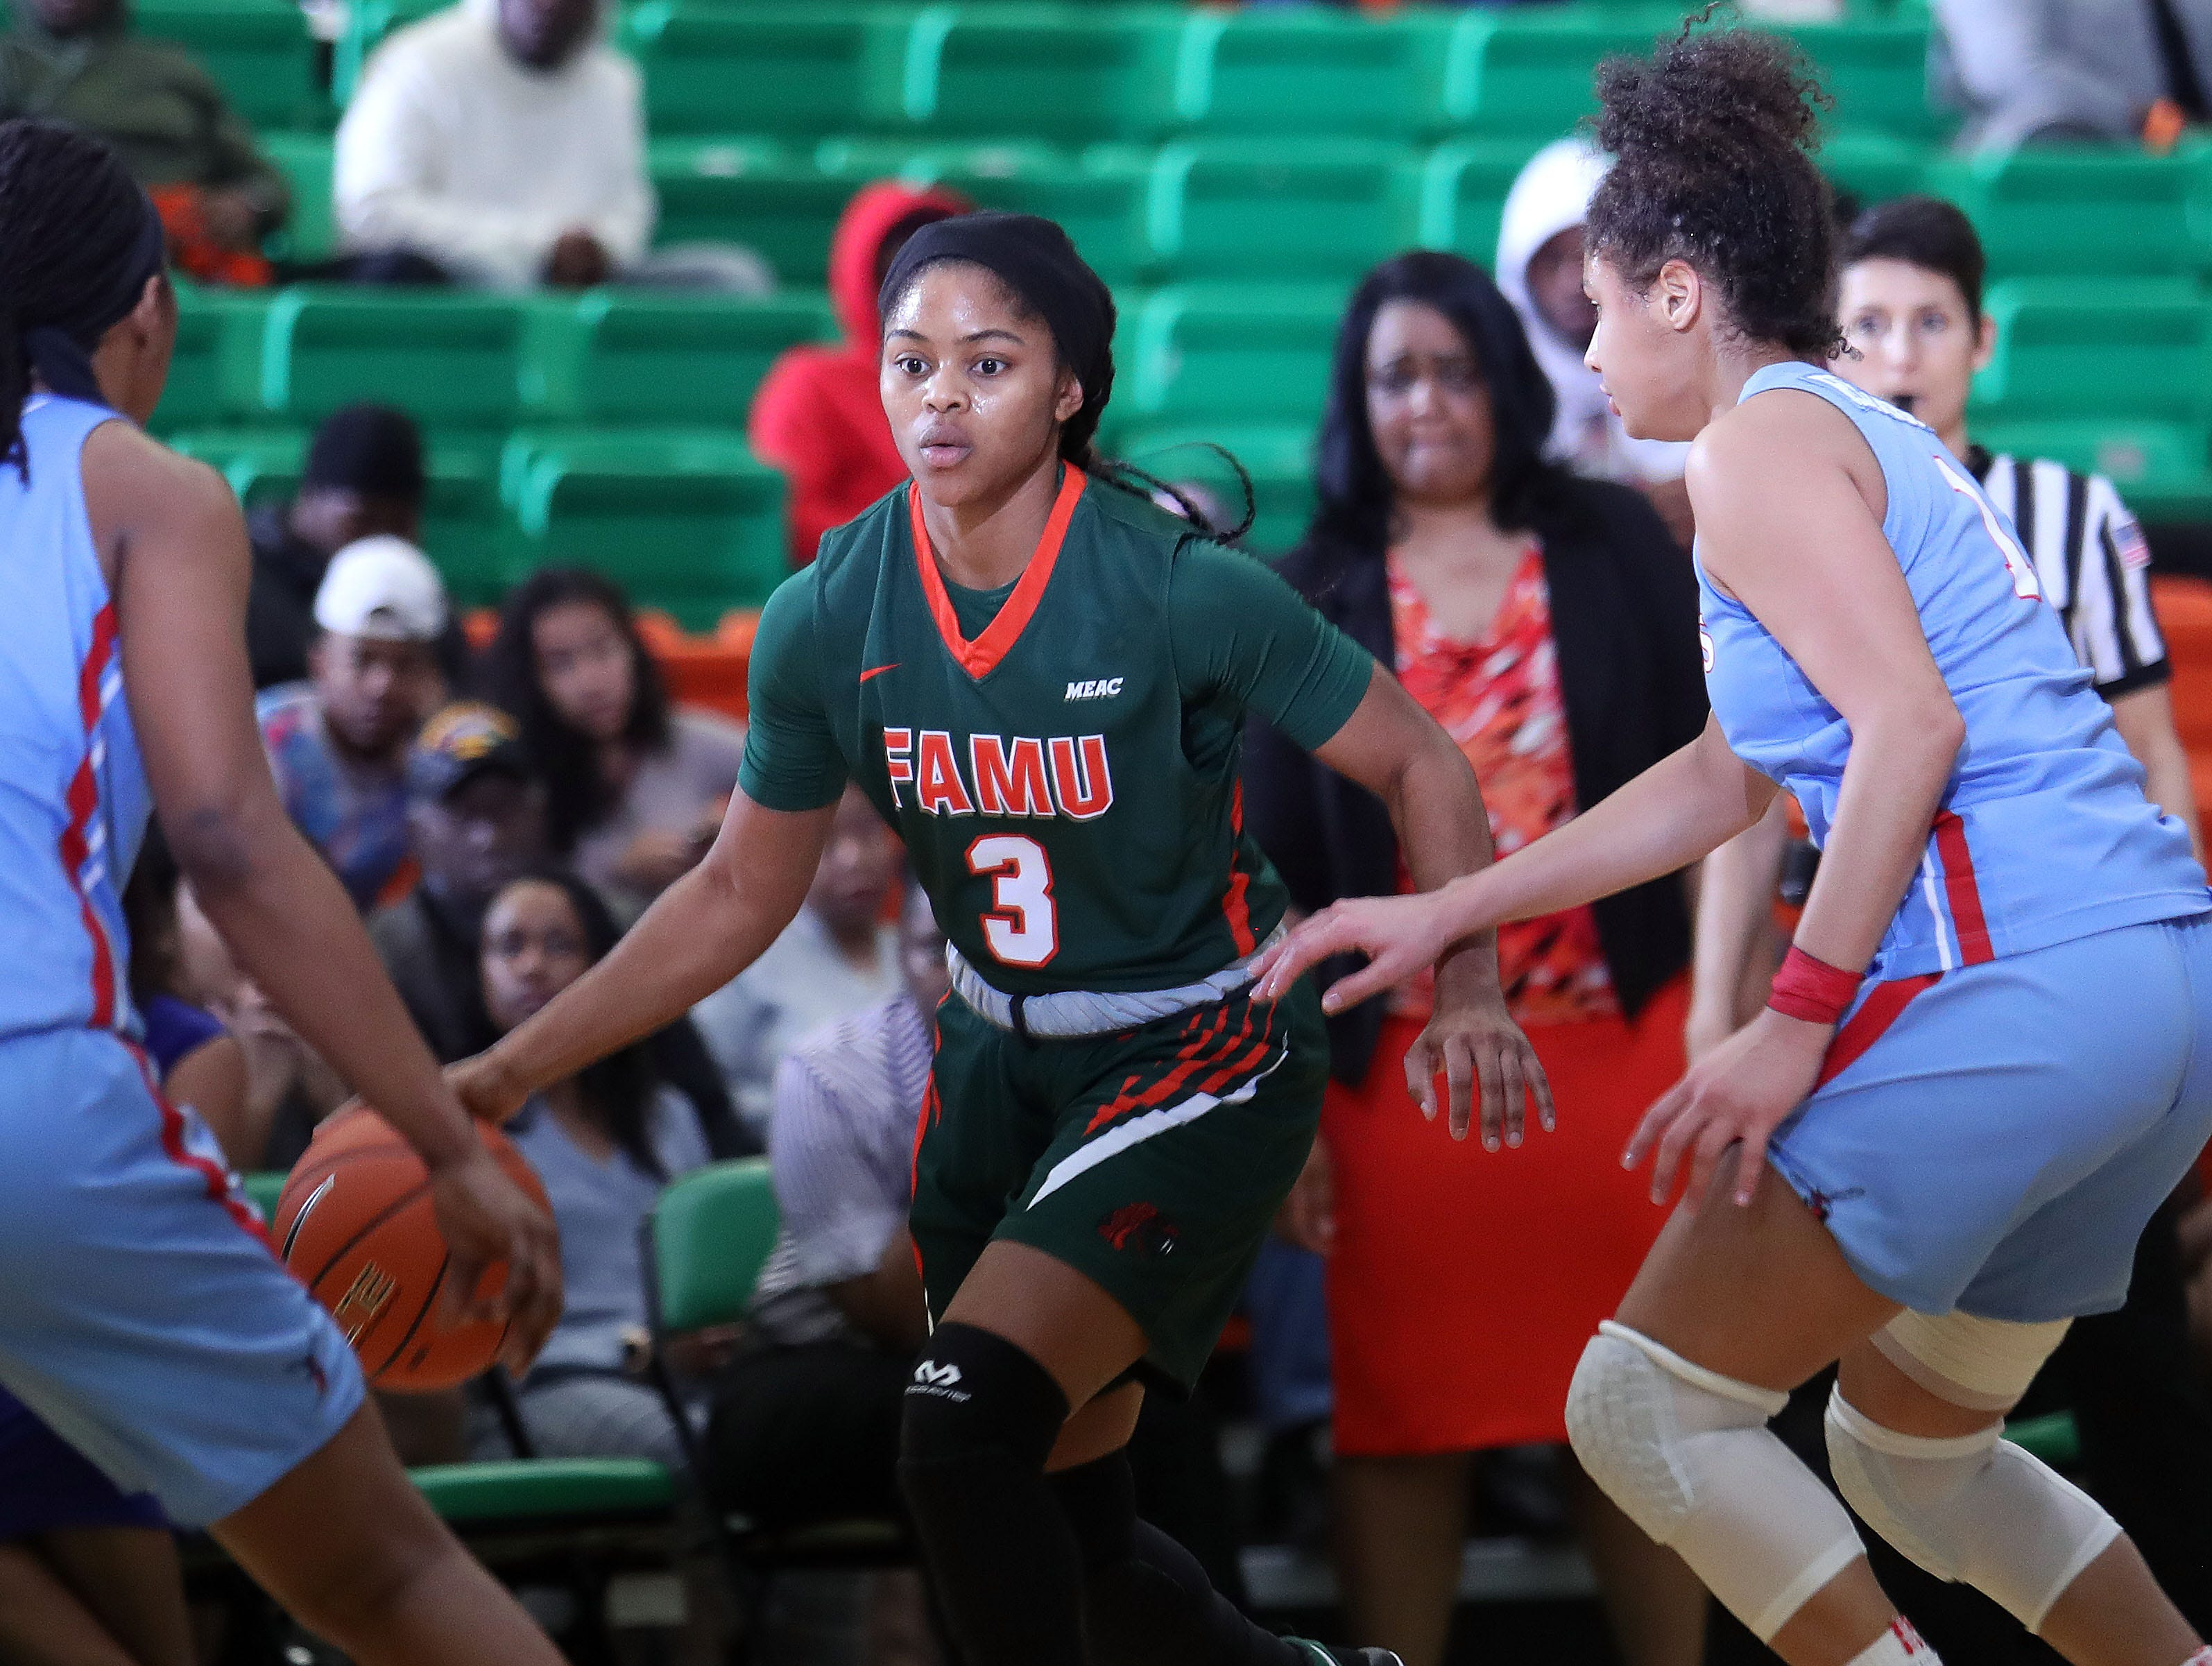 FAMU guard Candice Williams scored 9 points in the win over Delaware State on Jan. 21 at the Al Lawson Multipurpose Center.